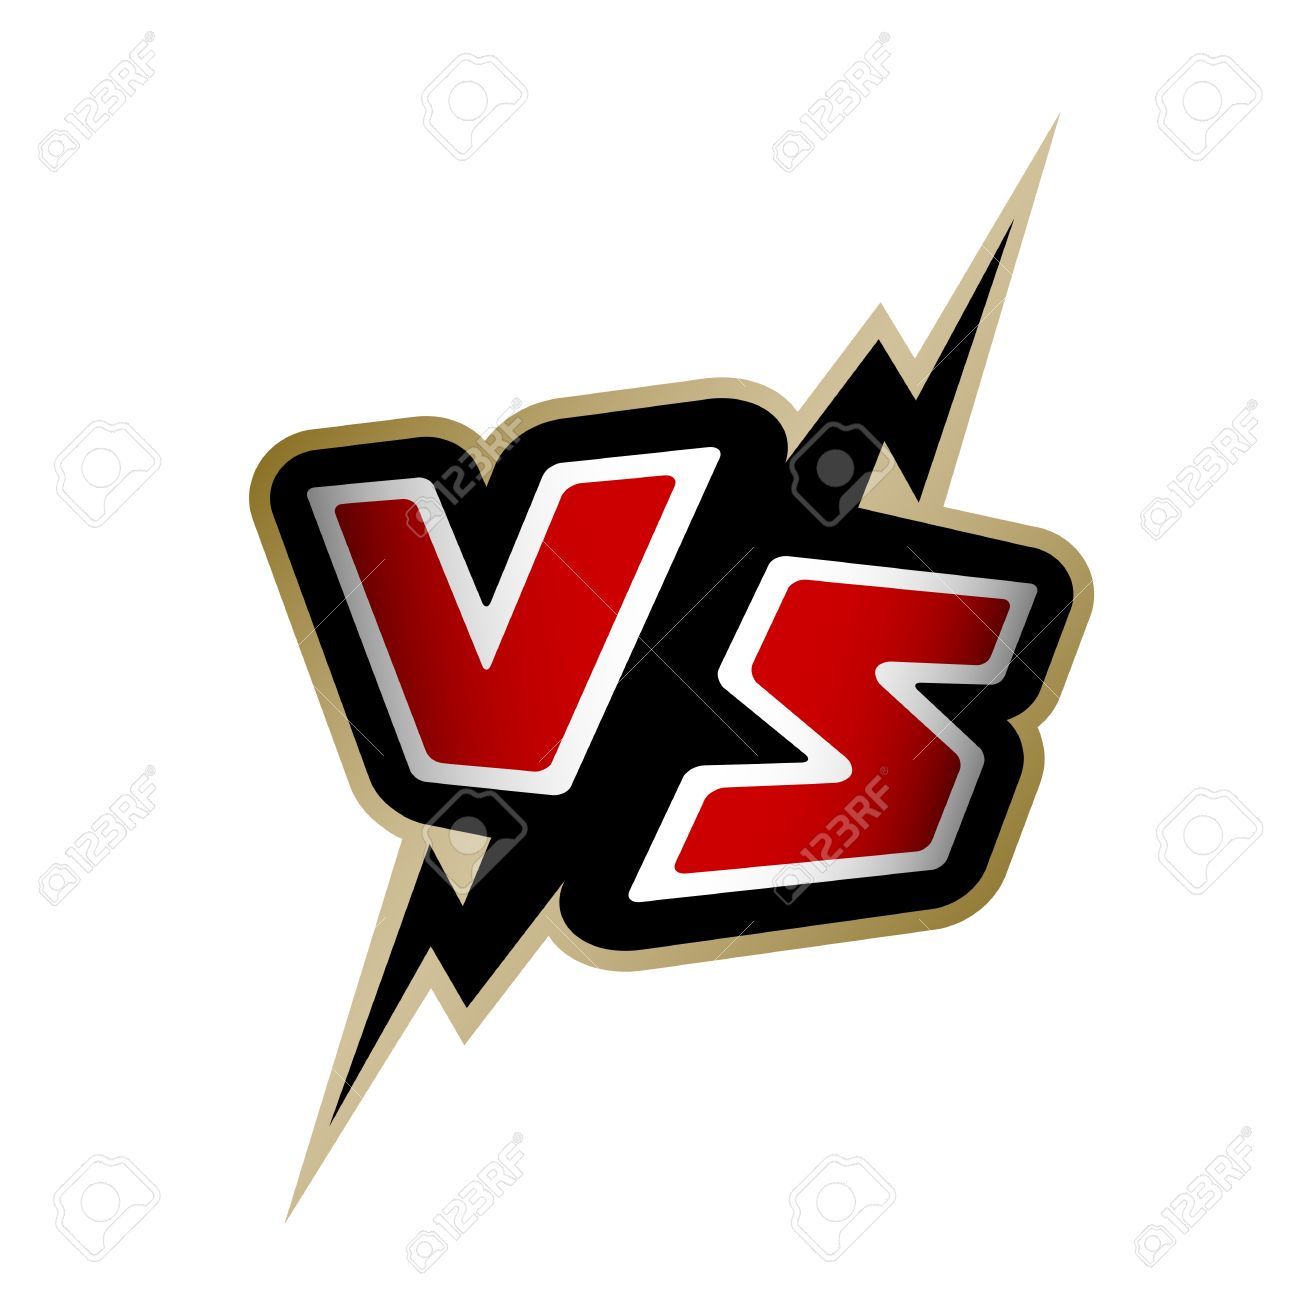 / Vs Versus Letters Vs Logo Vector Illustration